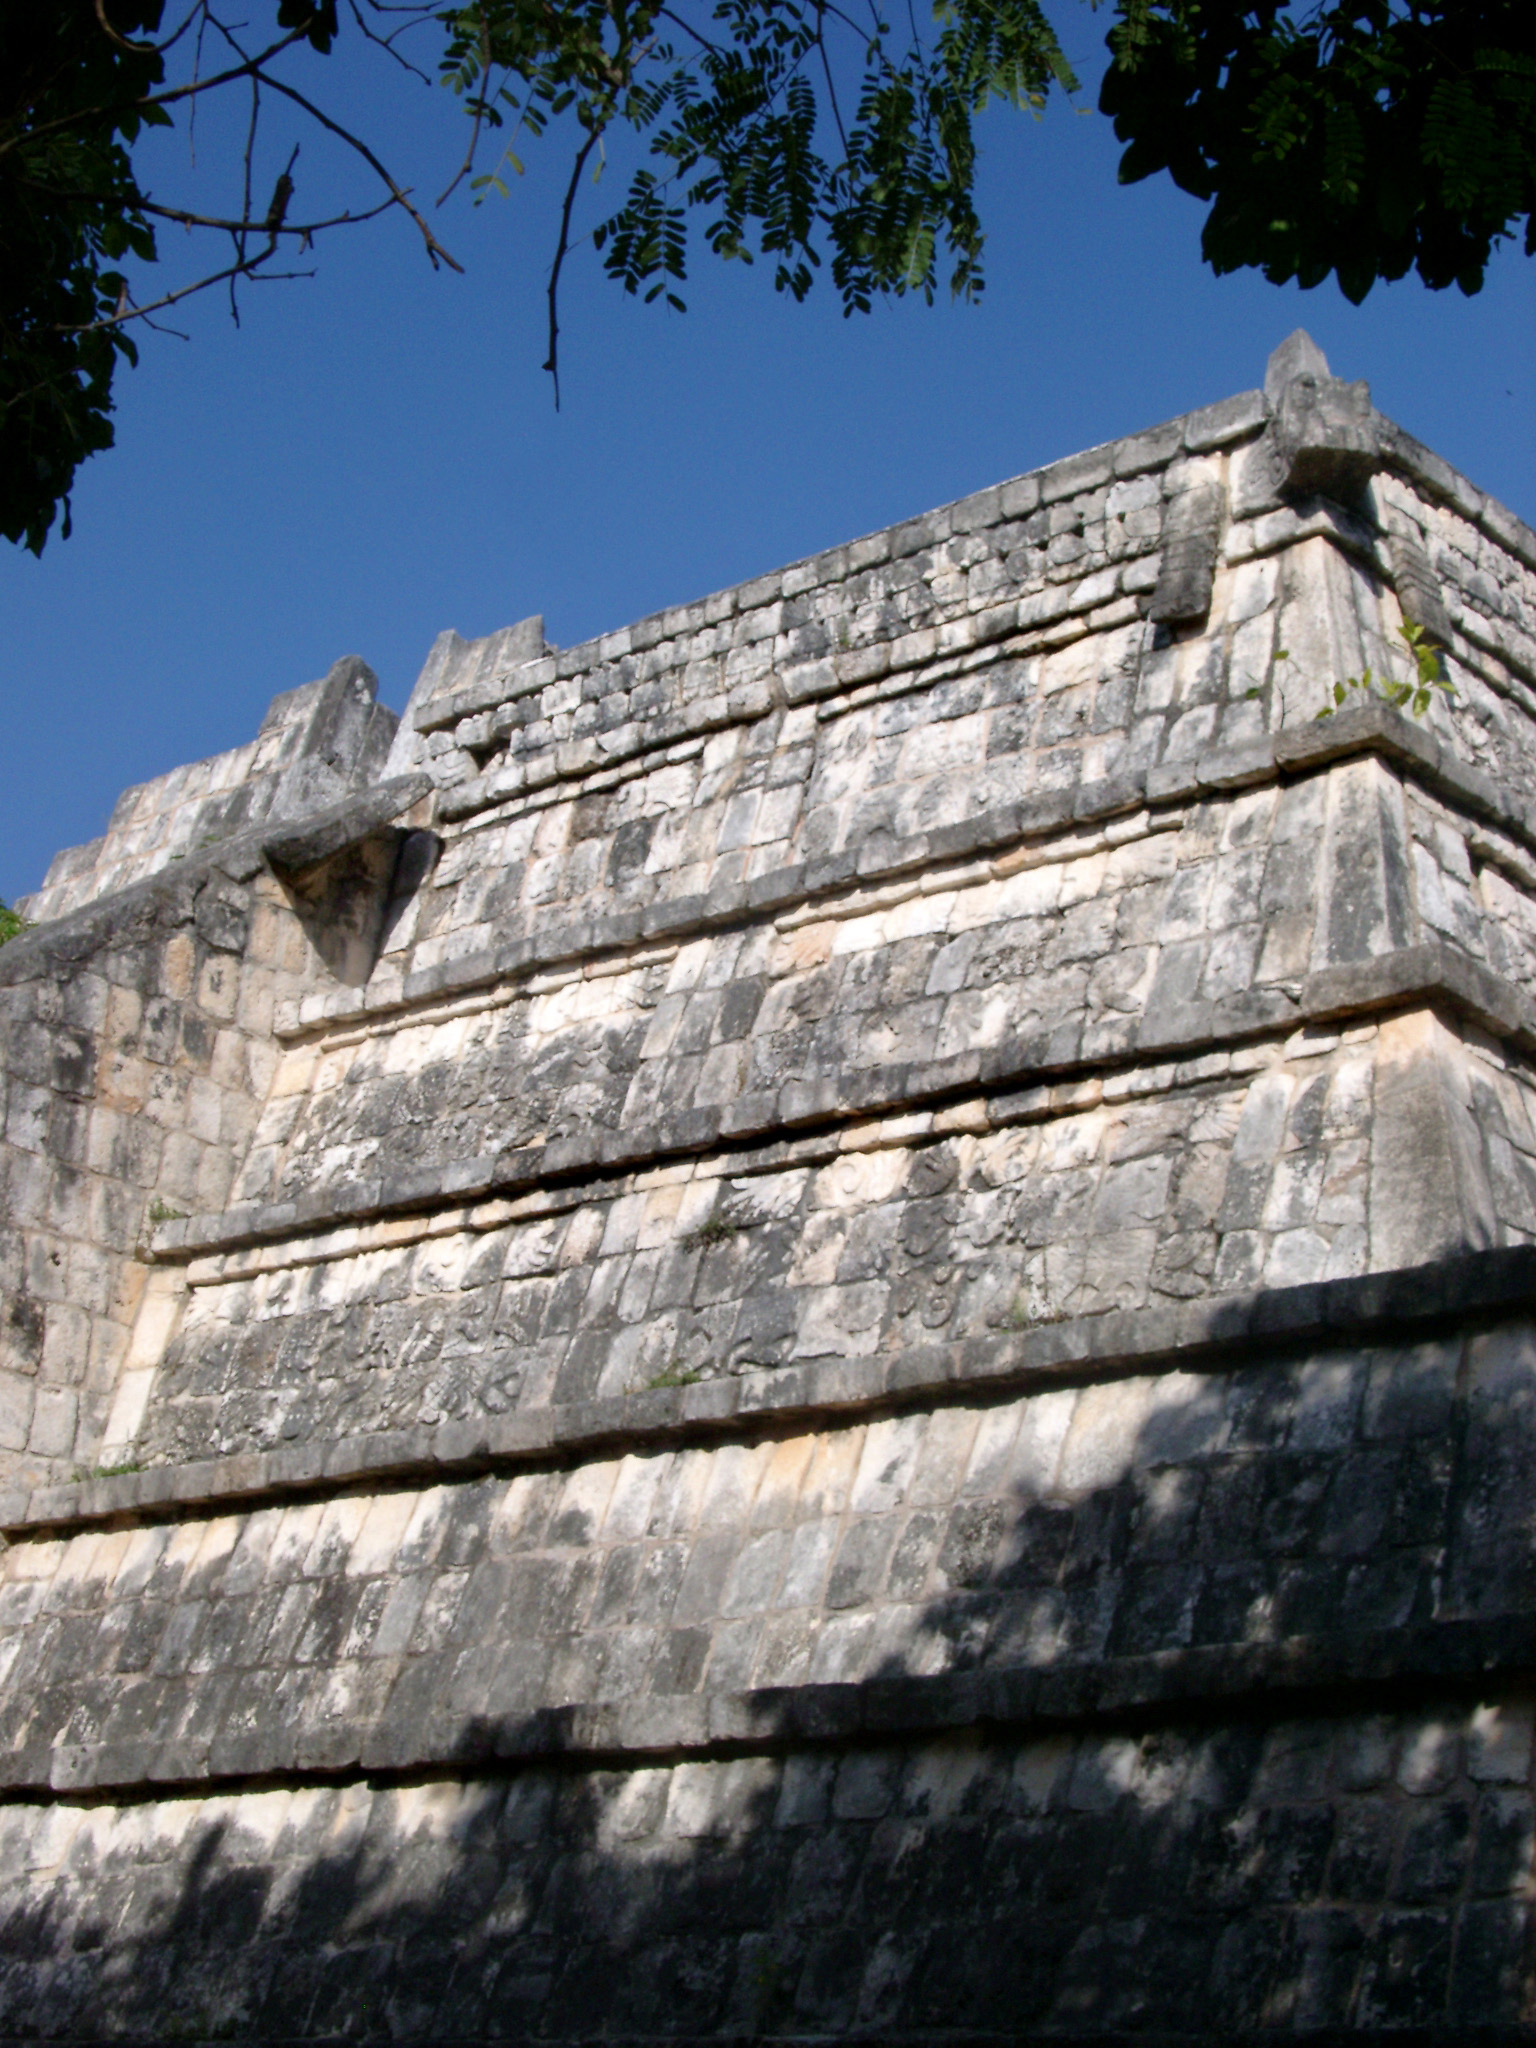 Close up view of the stone walls of the High priests tomb, Chitzen Itza Mayan ruins in the Yucatan Peninsula, Mexico